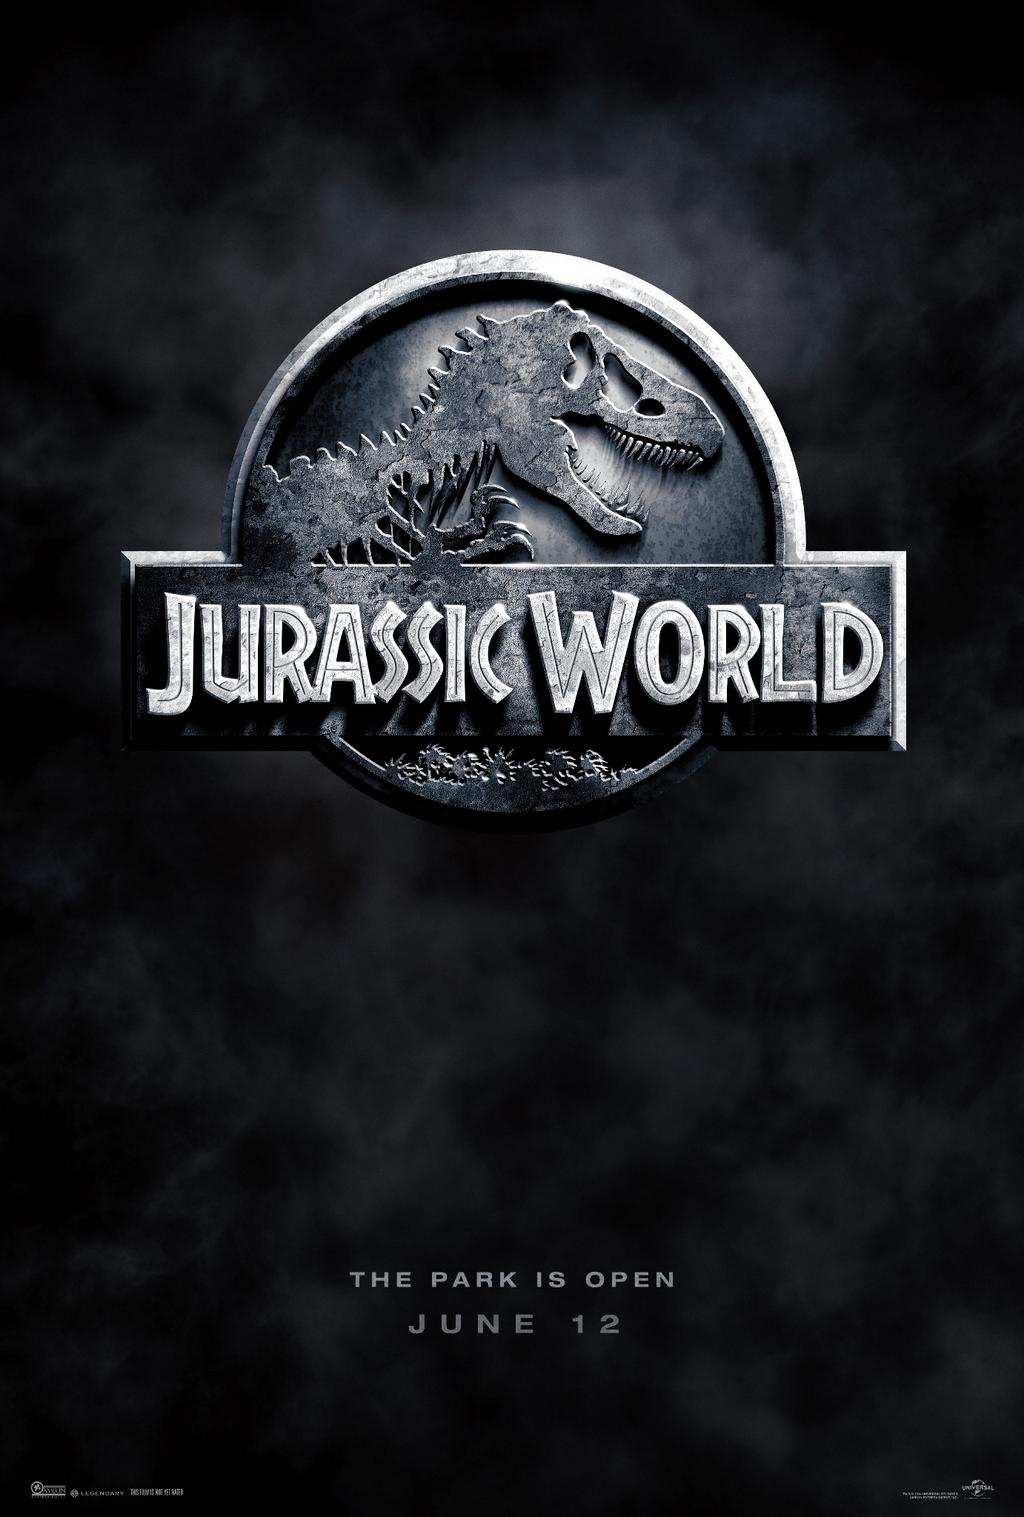 The Park Finally Opens With First Jurassic World Poster